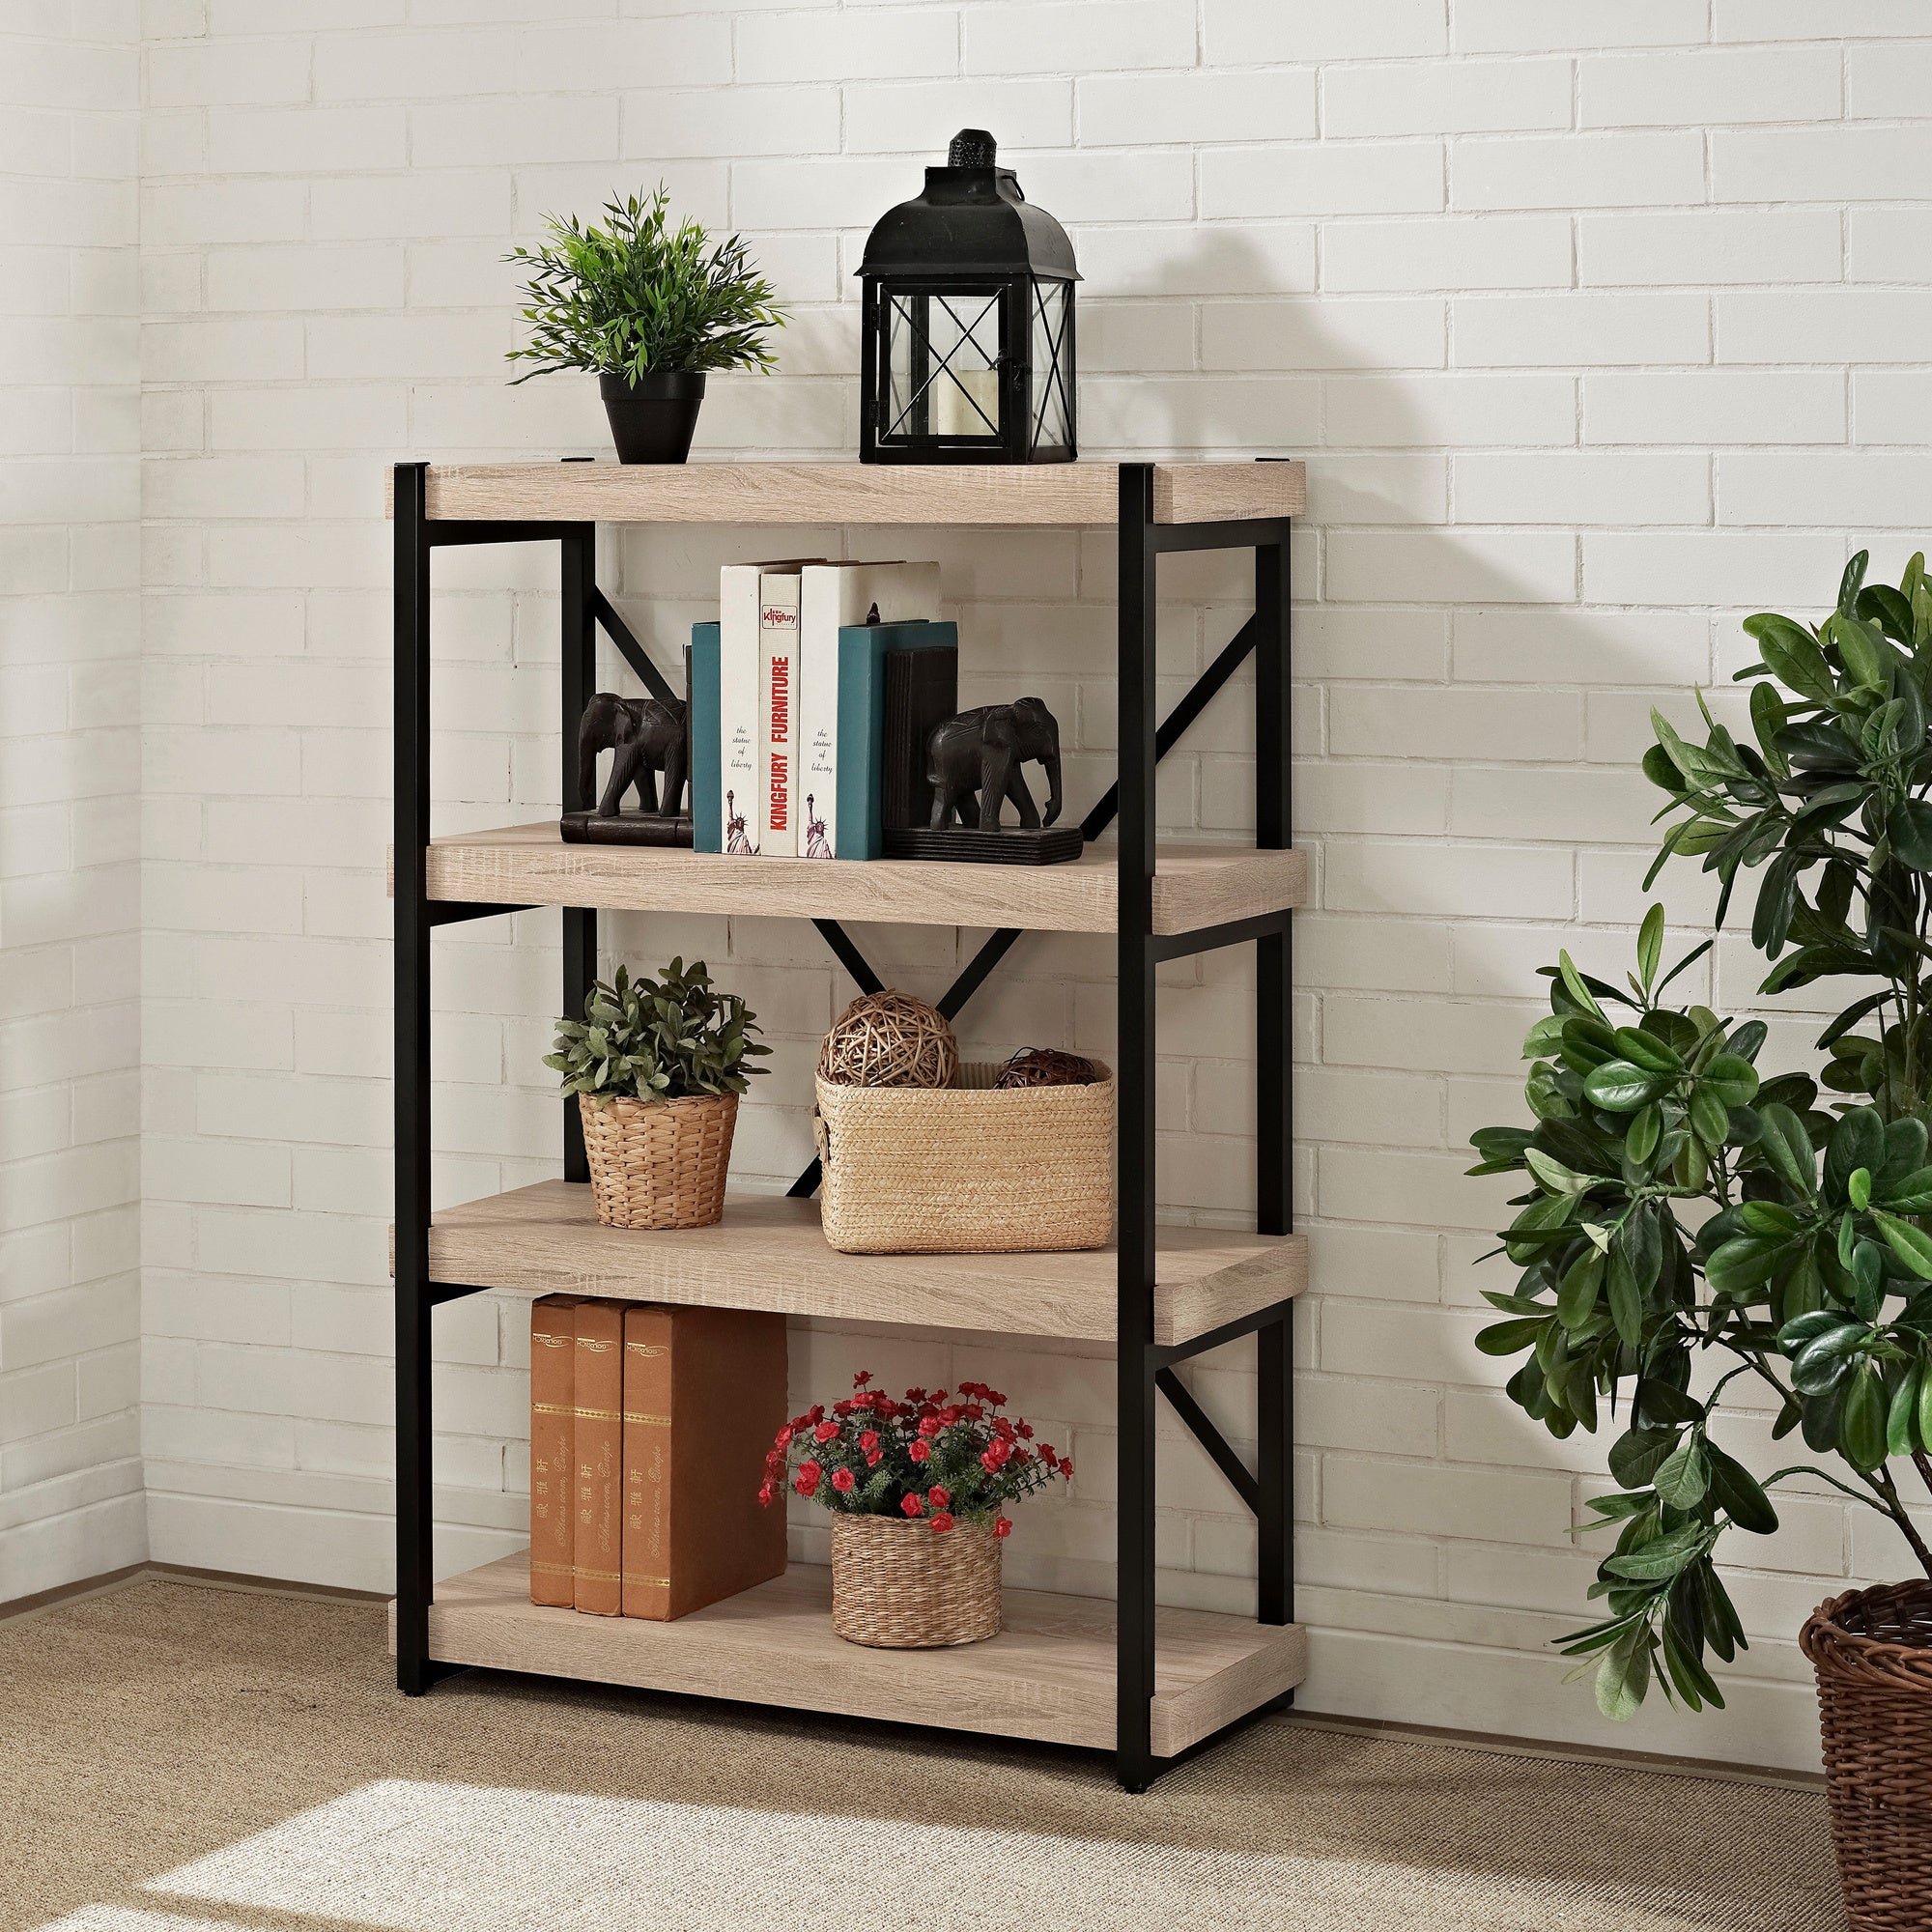 products threshold open bookshelves shelf height miskelly bookcase furniture item bookcases width four trim